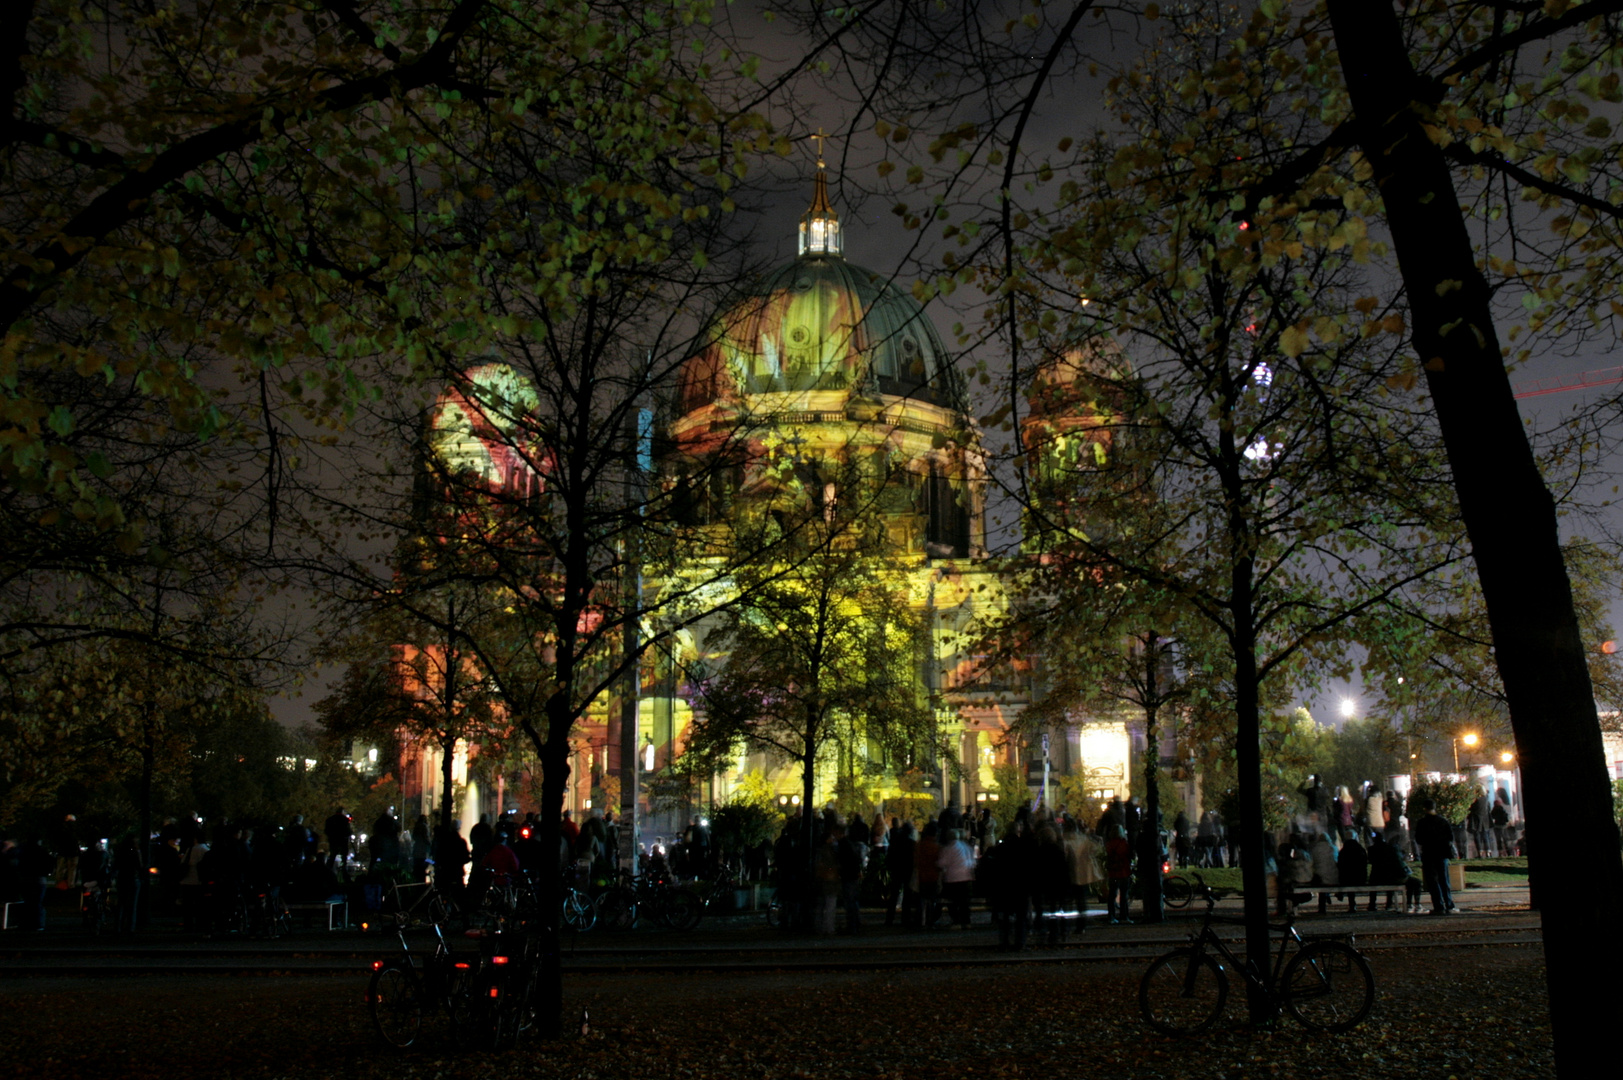 Festival of Lights Berlin 2013